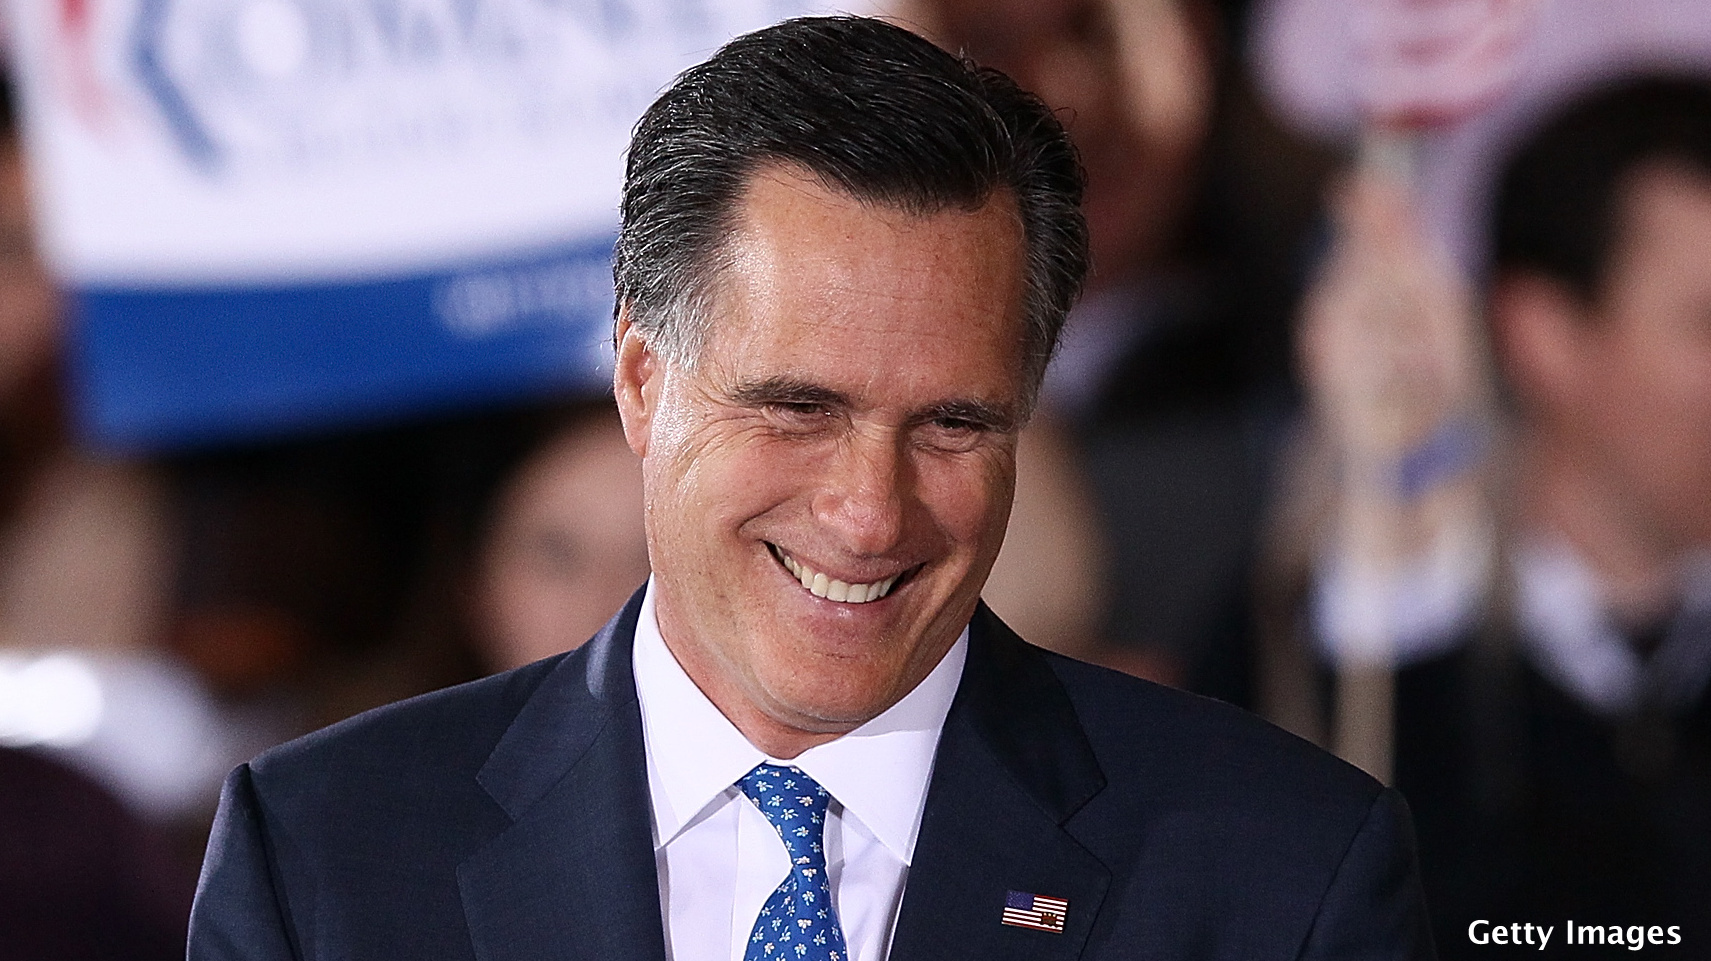 Romney takes big lead in new poll